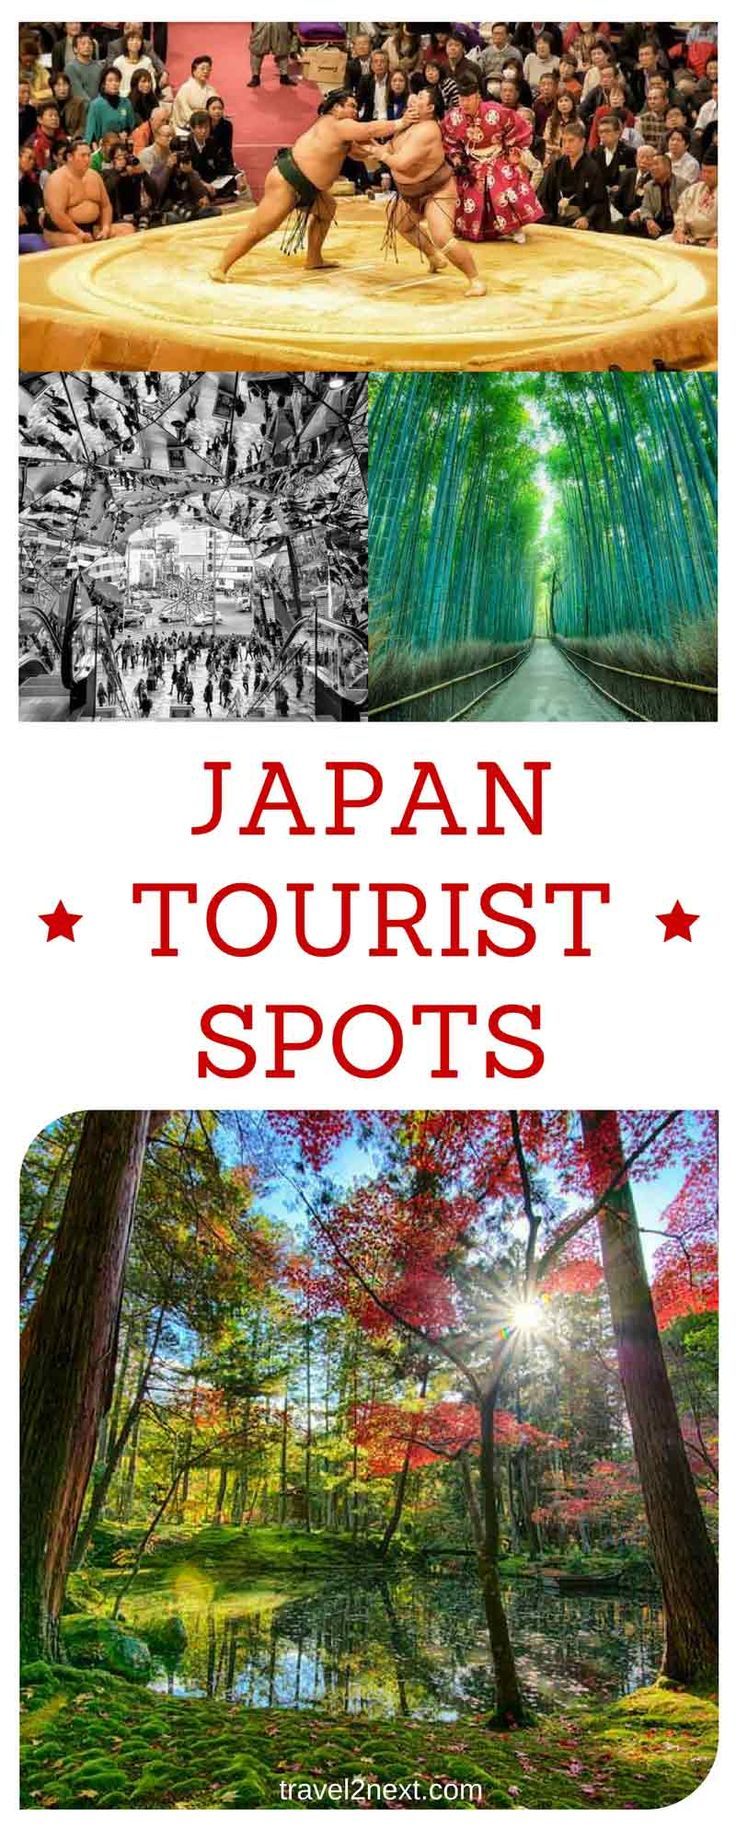 Japan Tourist Spots in Photos. Japan is a country where ancient meets modern.